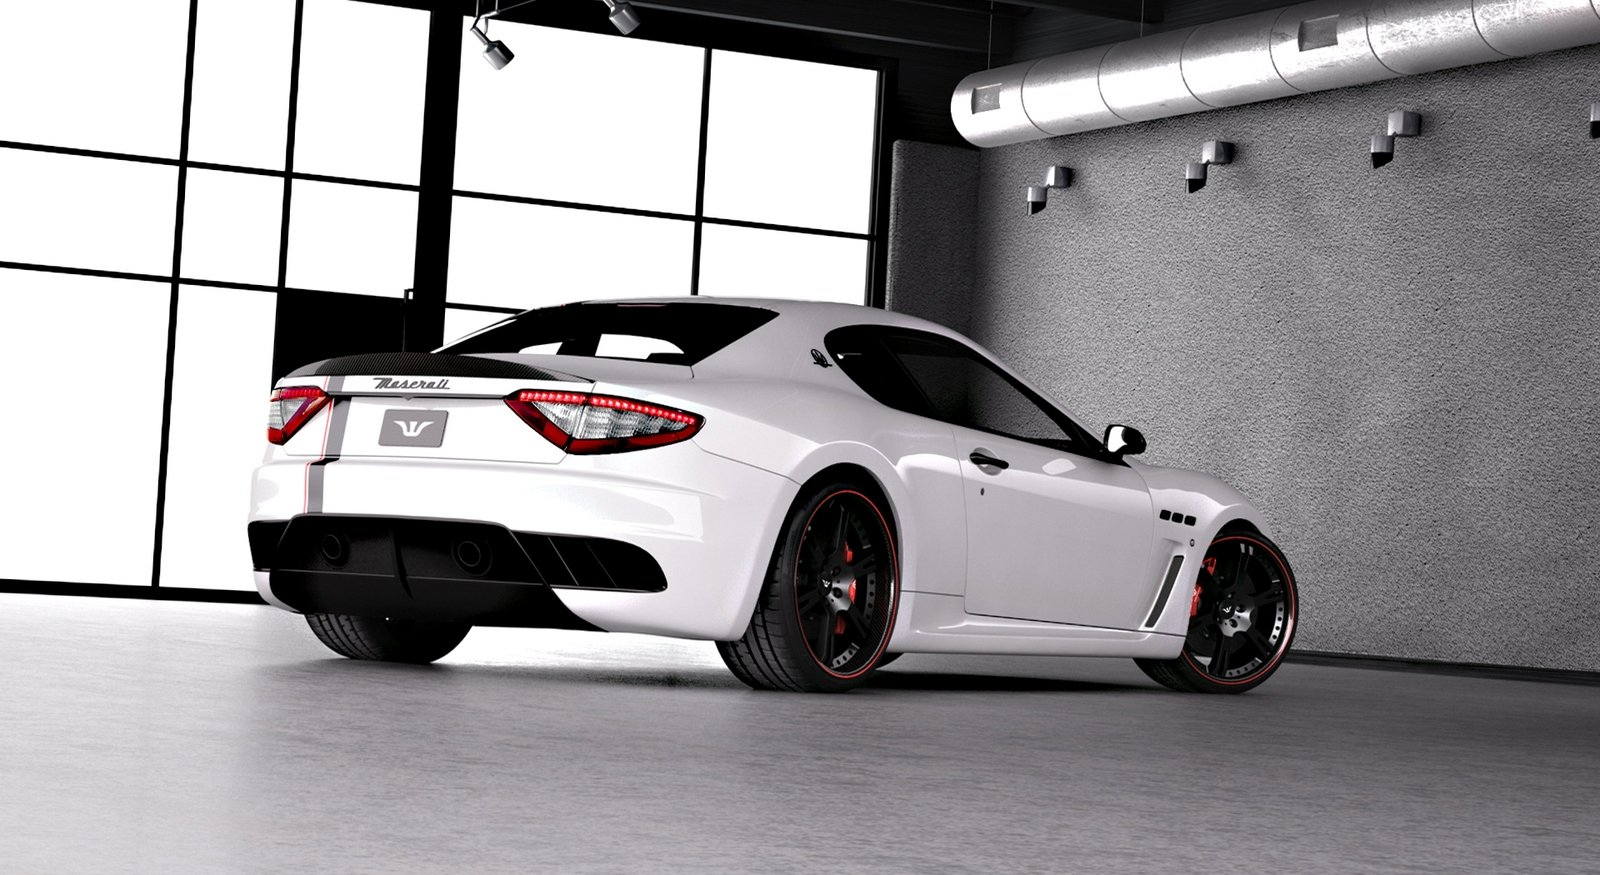 http://pictures.topspeed.com/IMG/crop/201305/maserati-mc-stradale-2_1600x0w.jpg